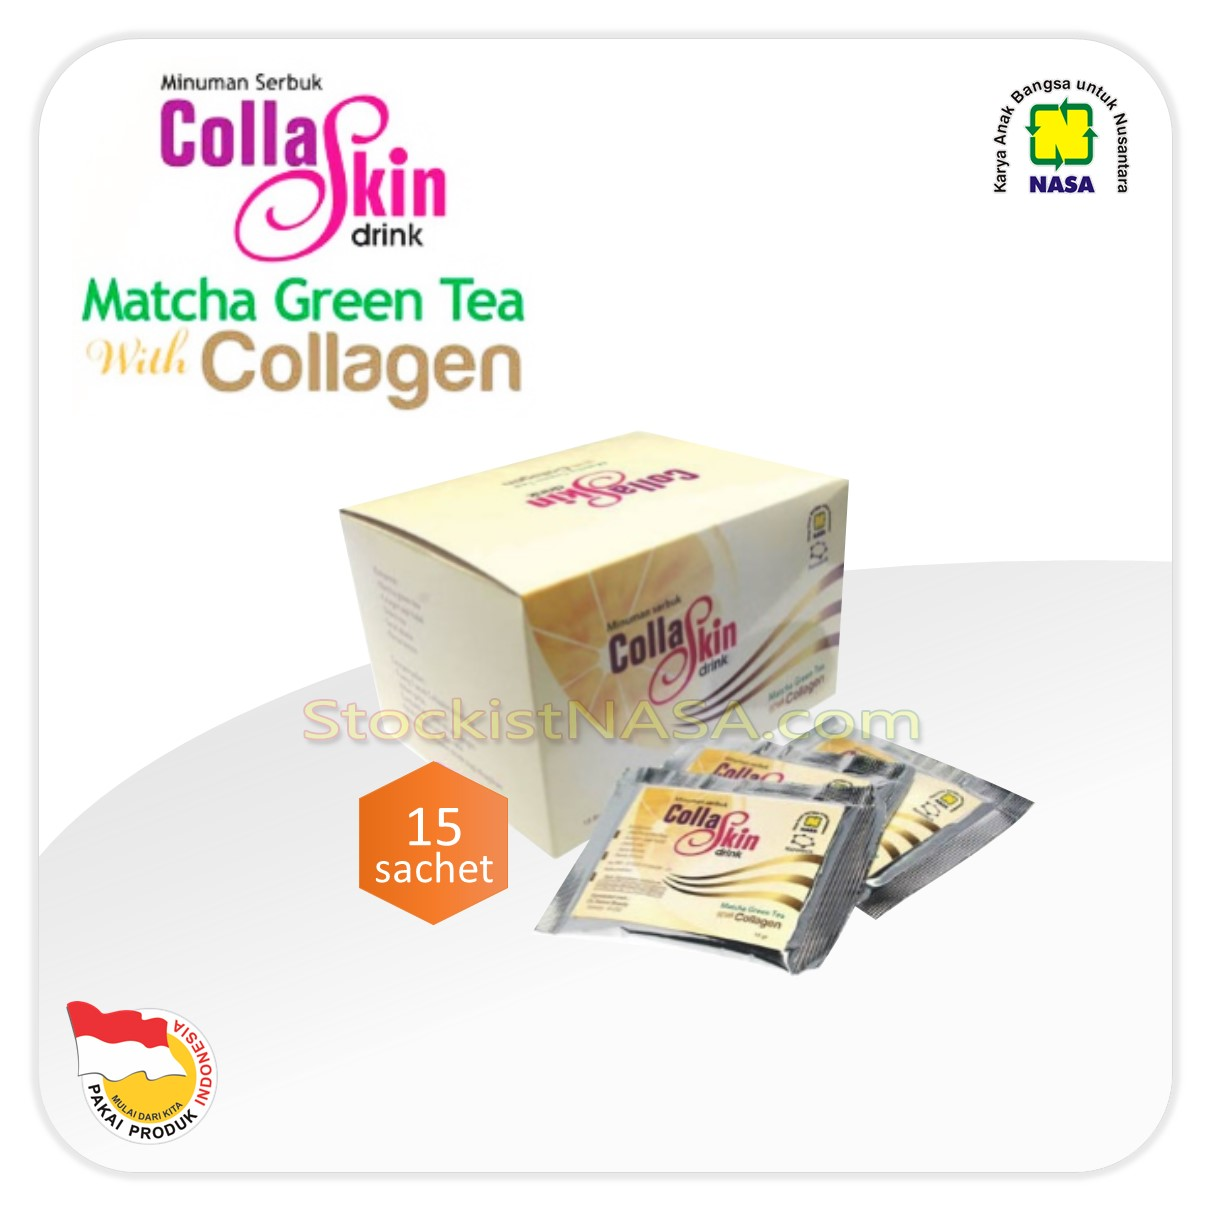 Collaskin Drink Nasa